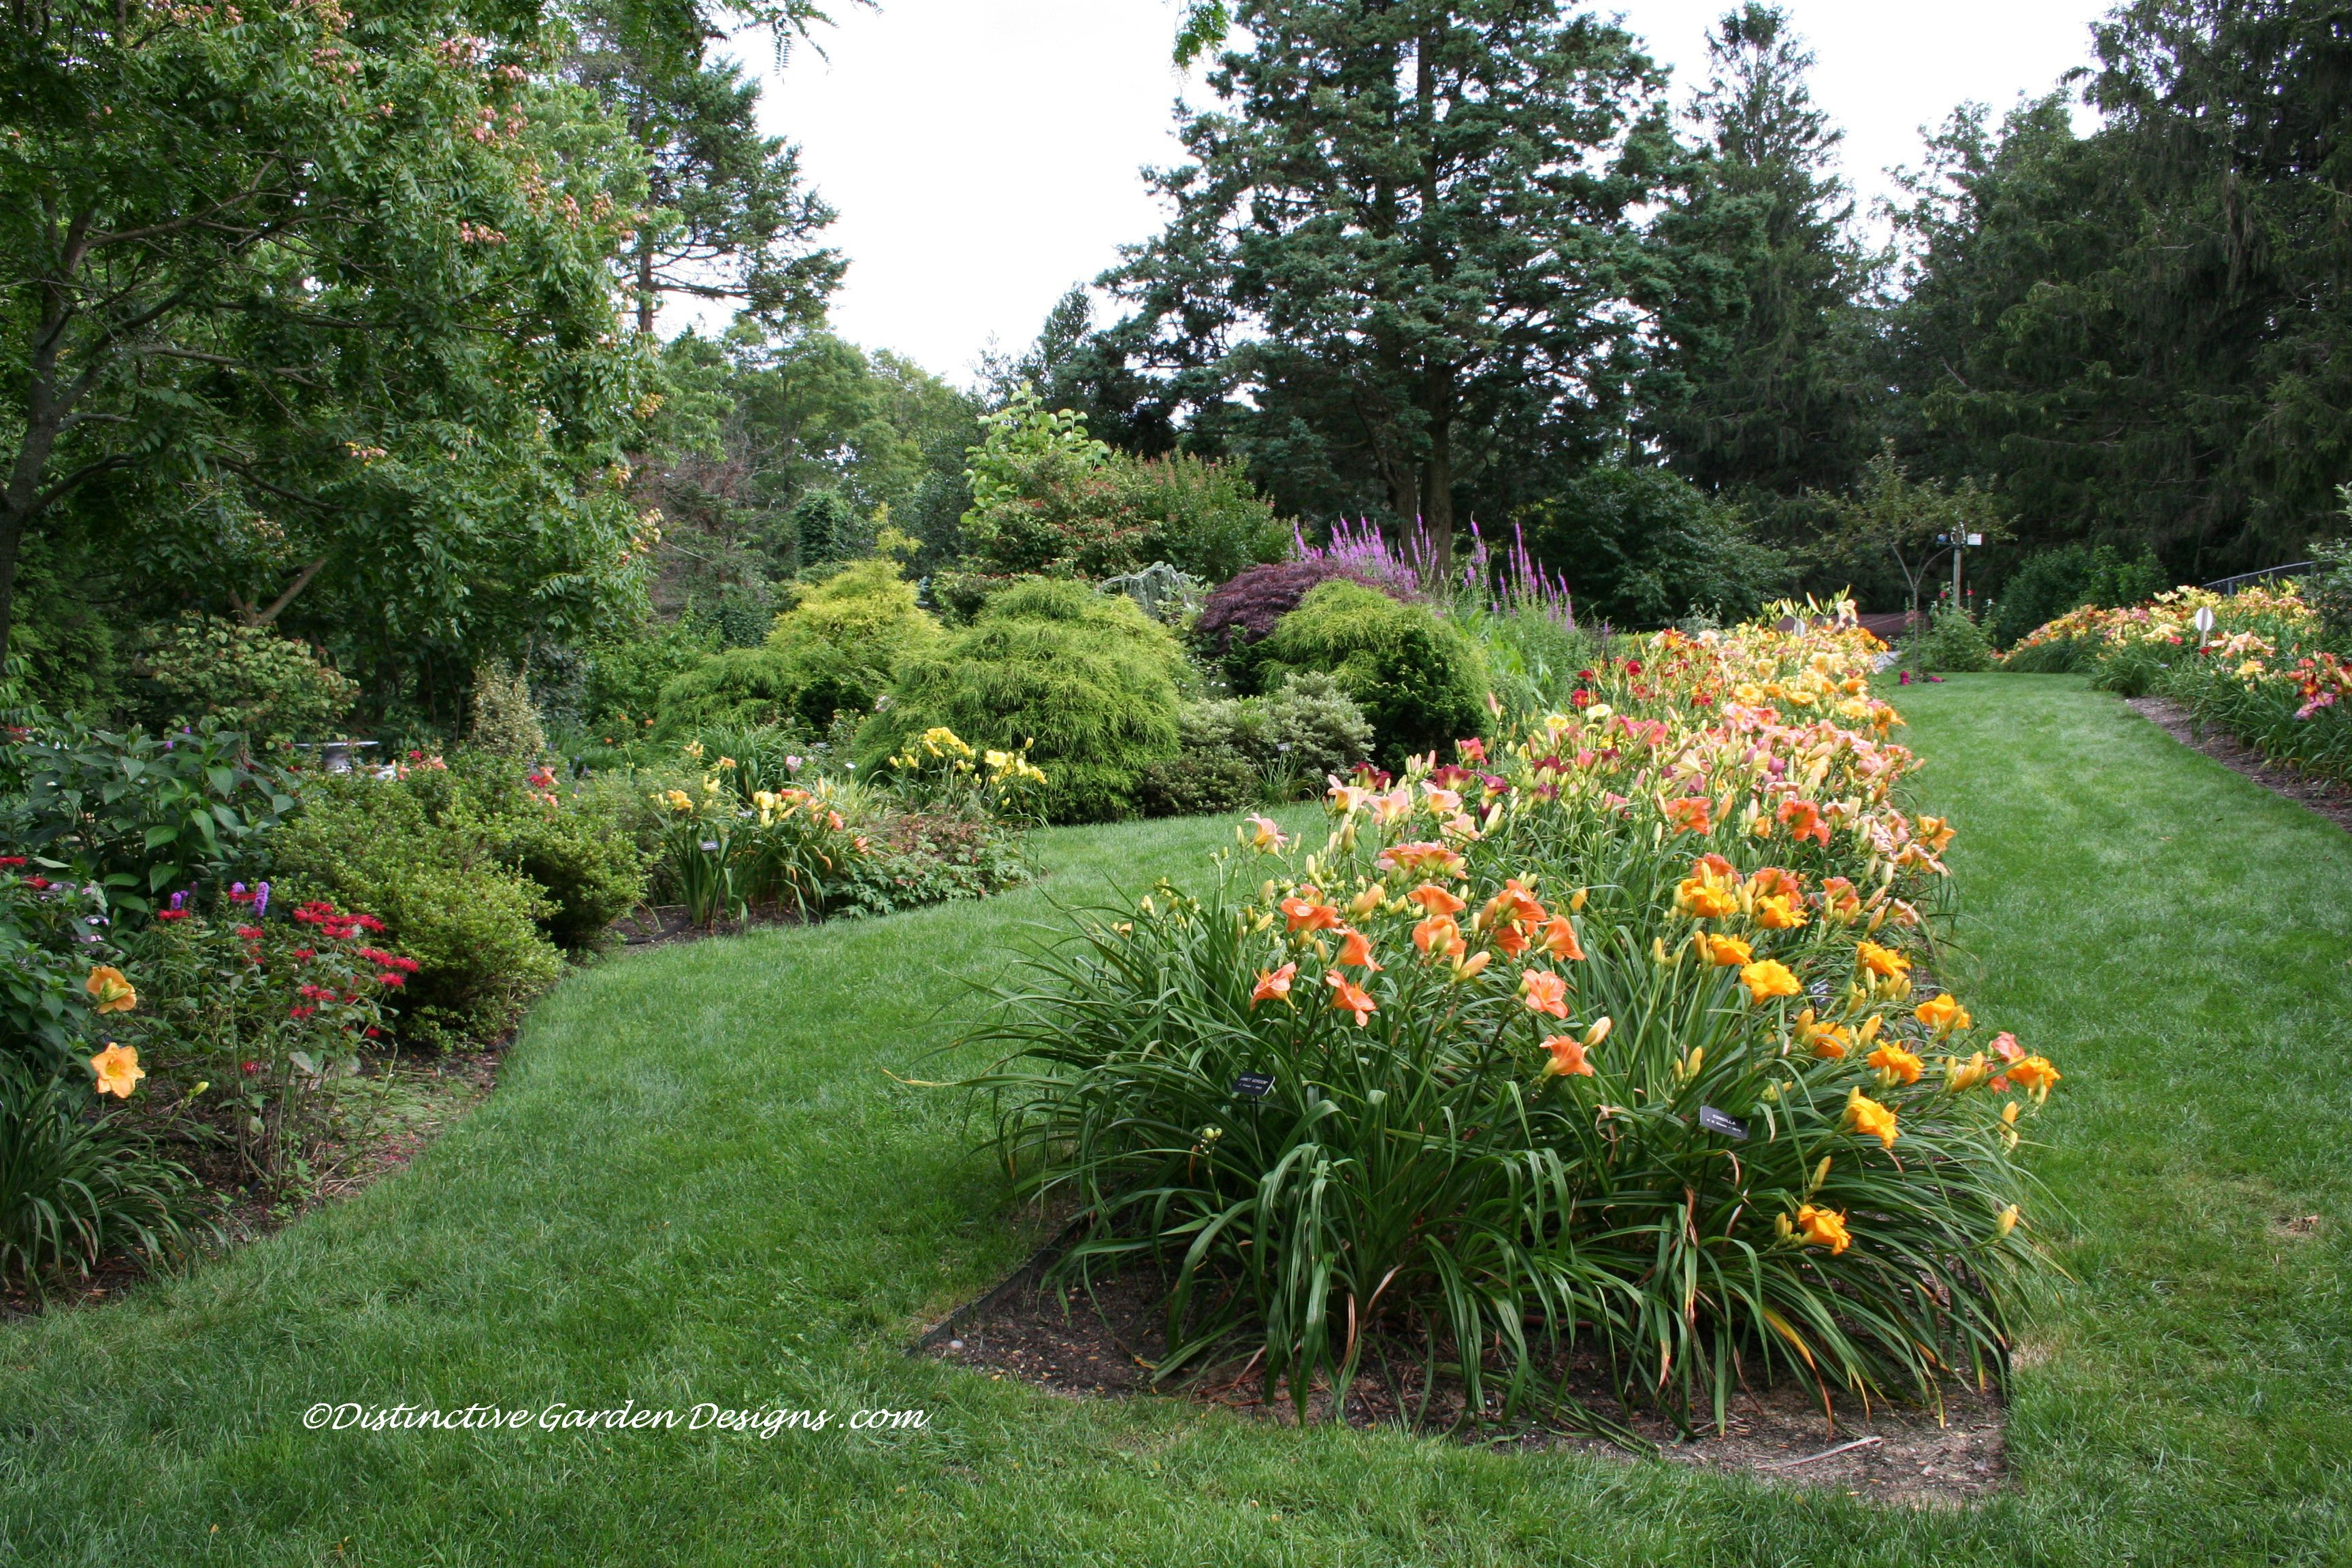 Formal Daylily Beds With Perennial Borders, Li